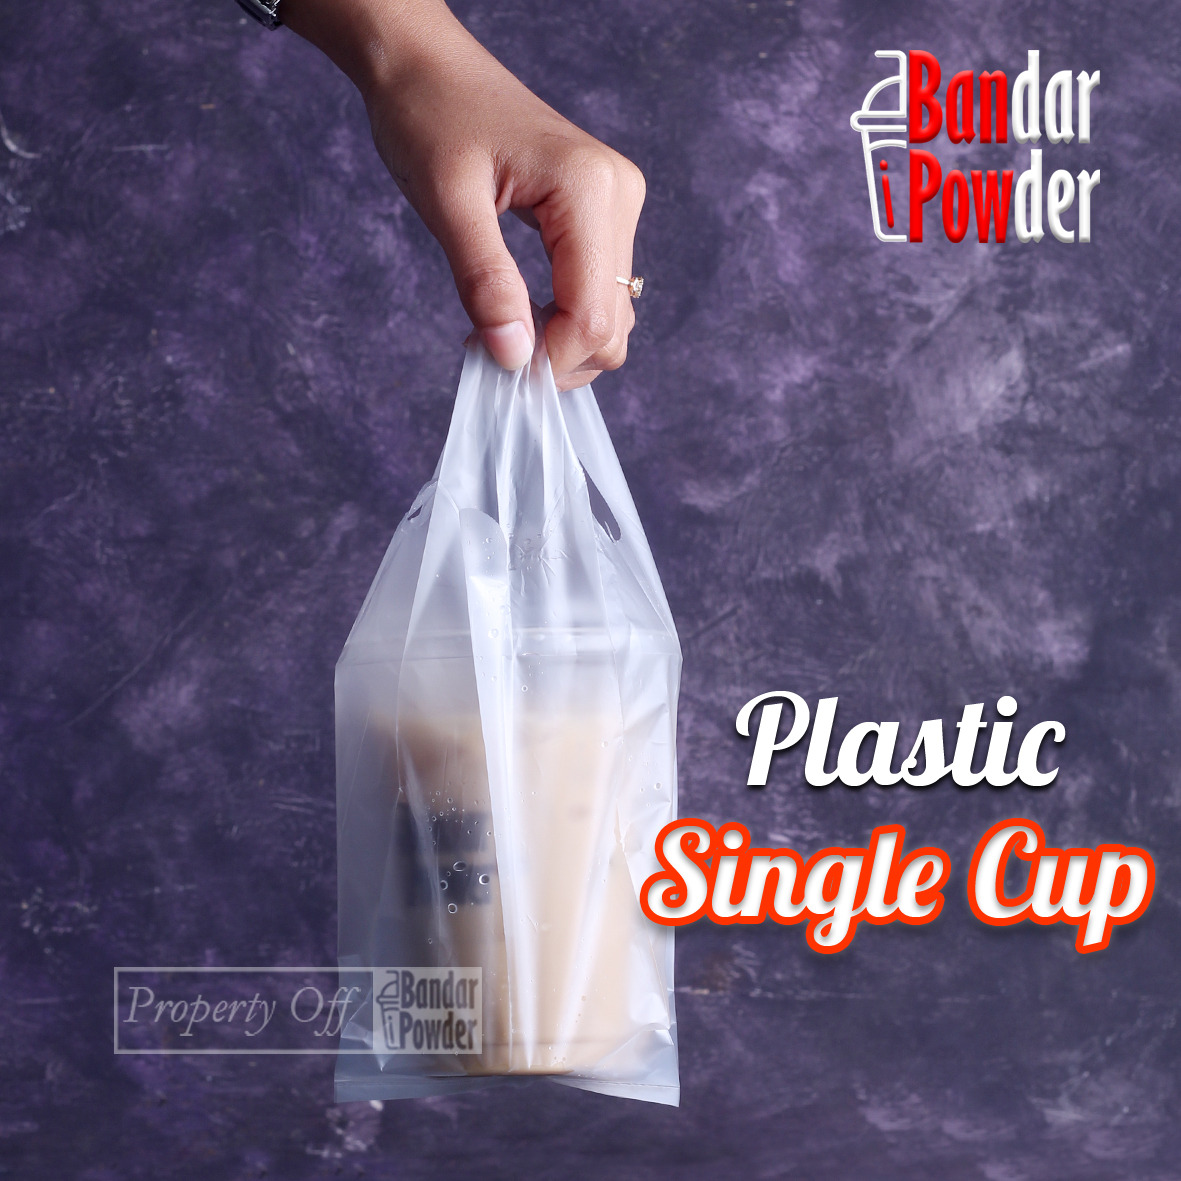 Jual Plastik Tenteng Kantong Kresek Plastik Take Away Bubble Tea